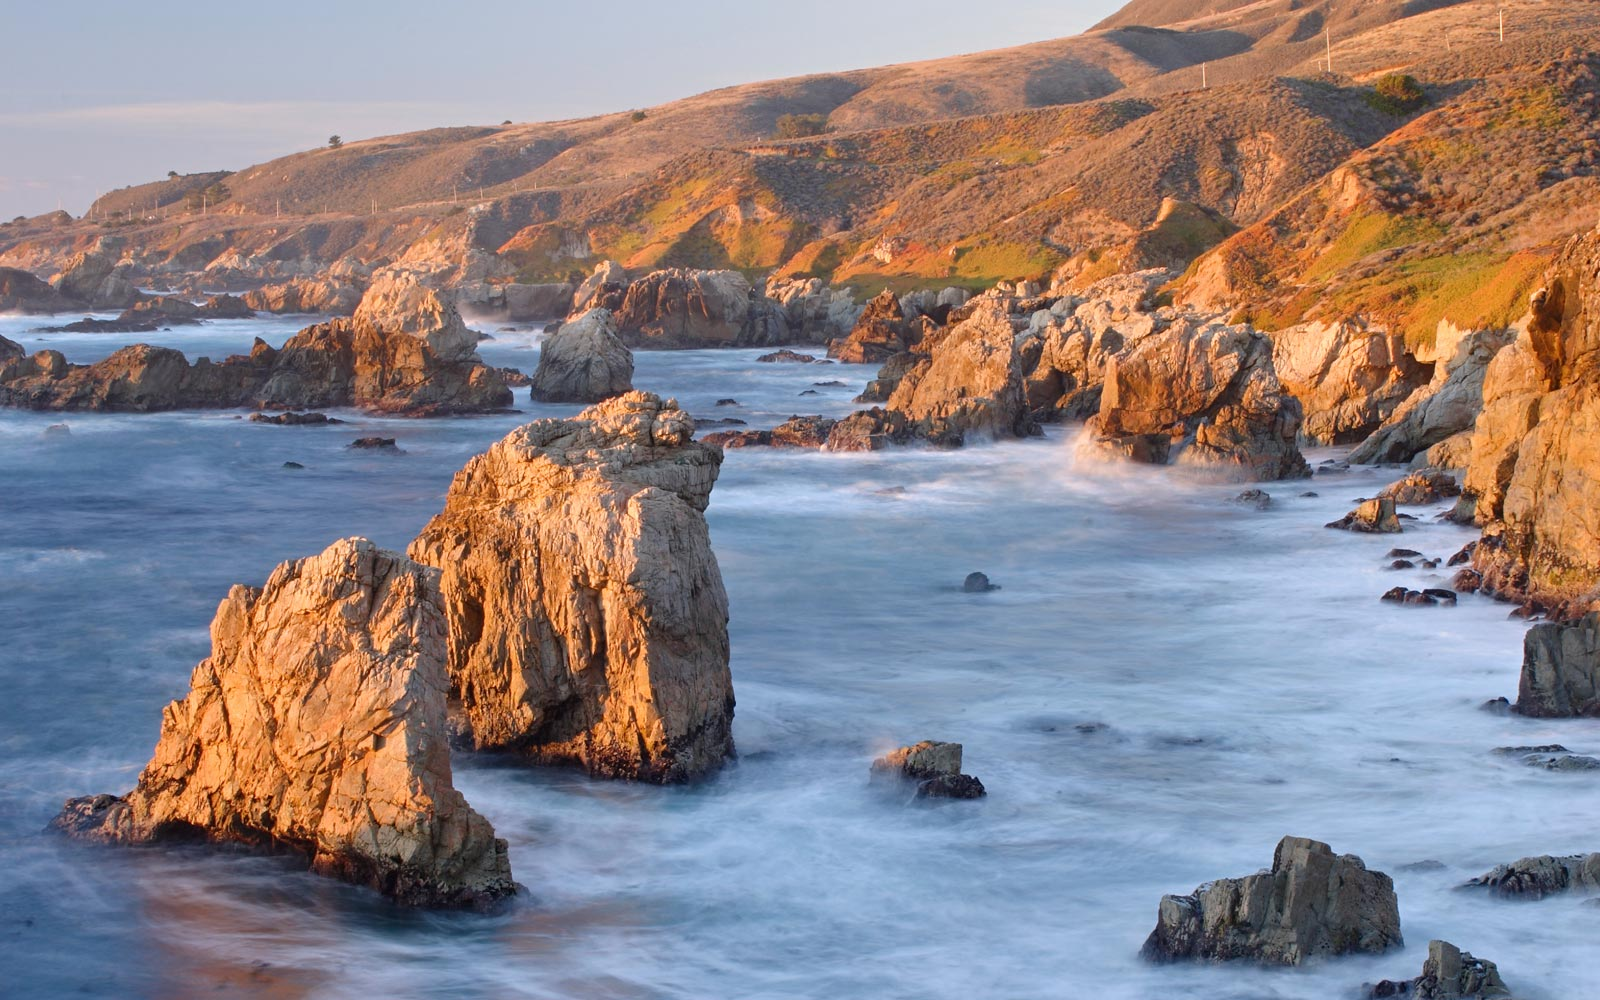 Aerial view of rocky California coastline